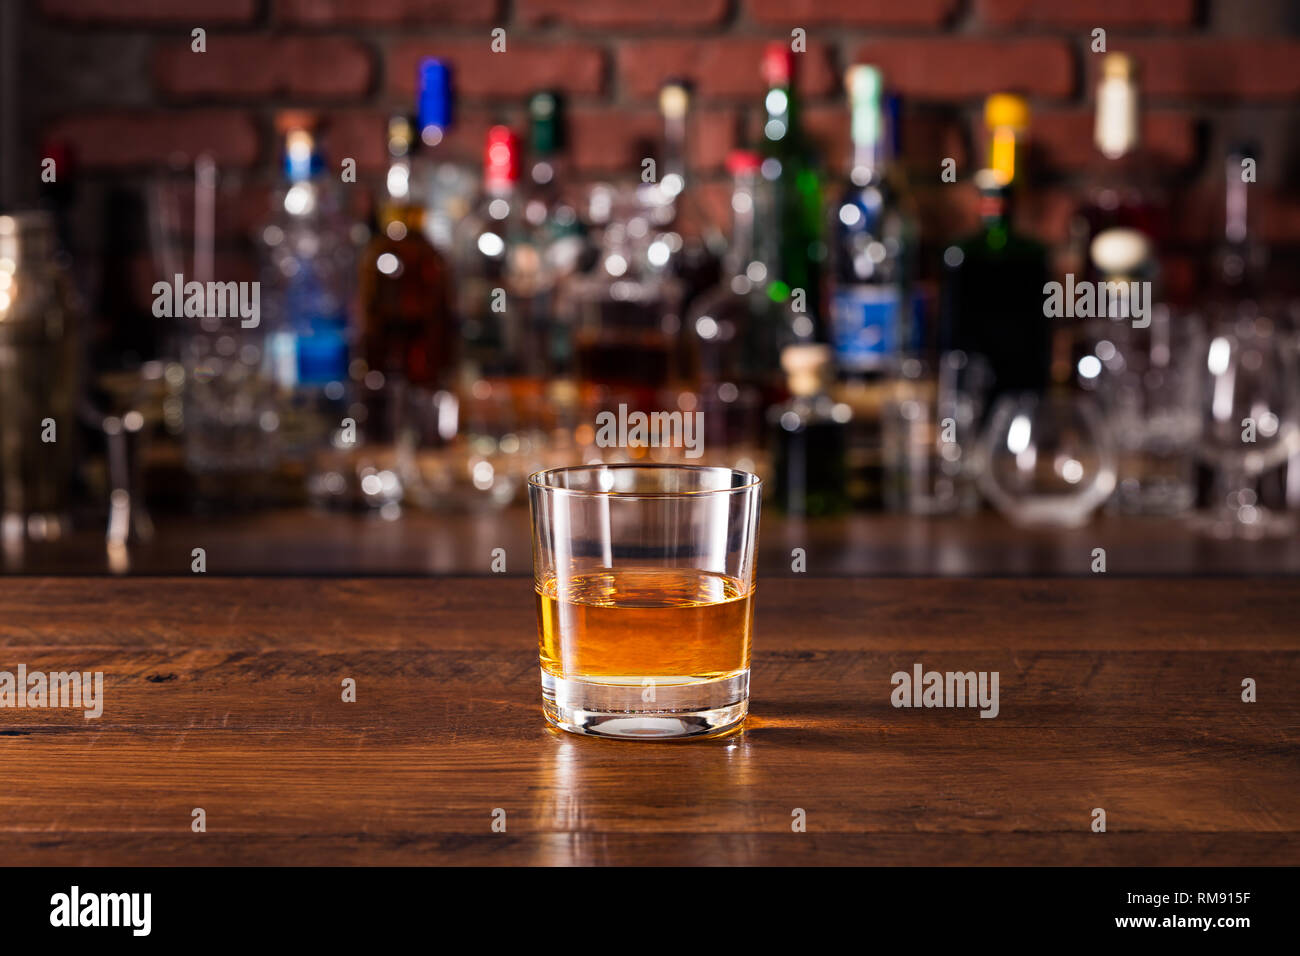 Refreshing Whiskey Neat Cocktail on a Bar - Stock Image